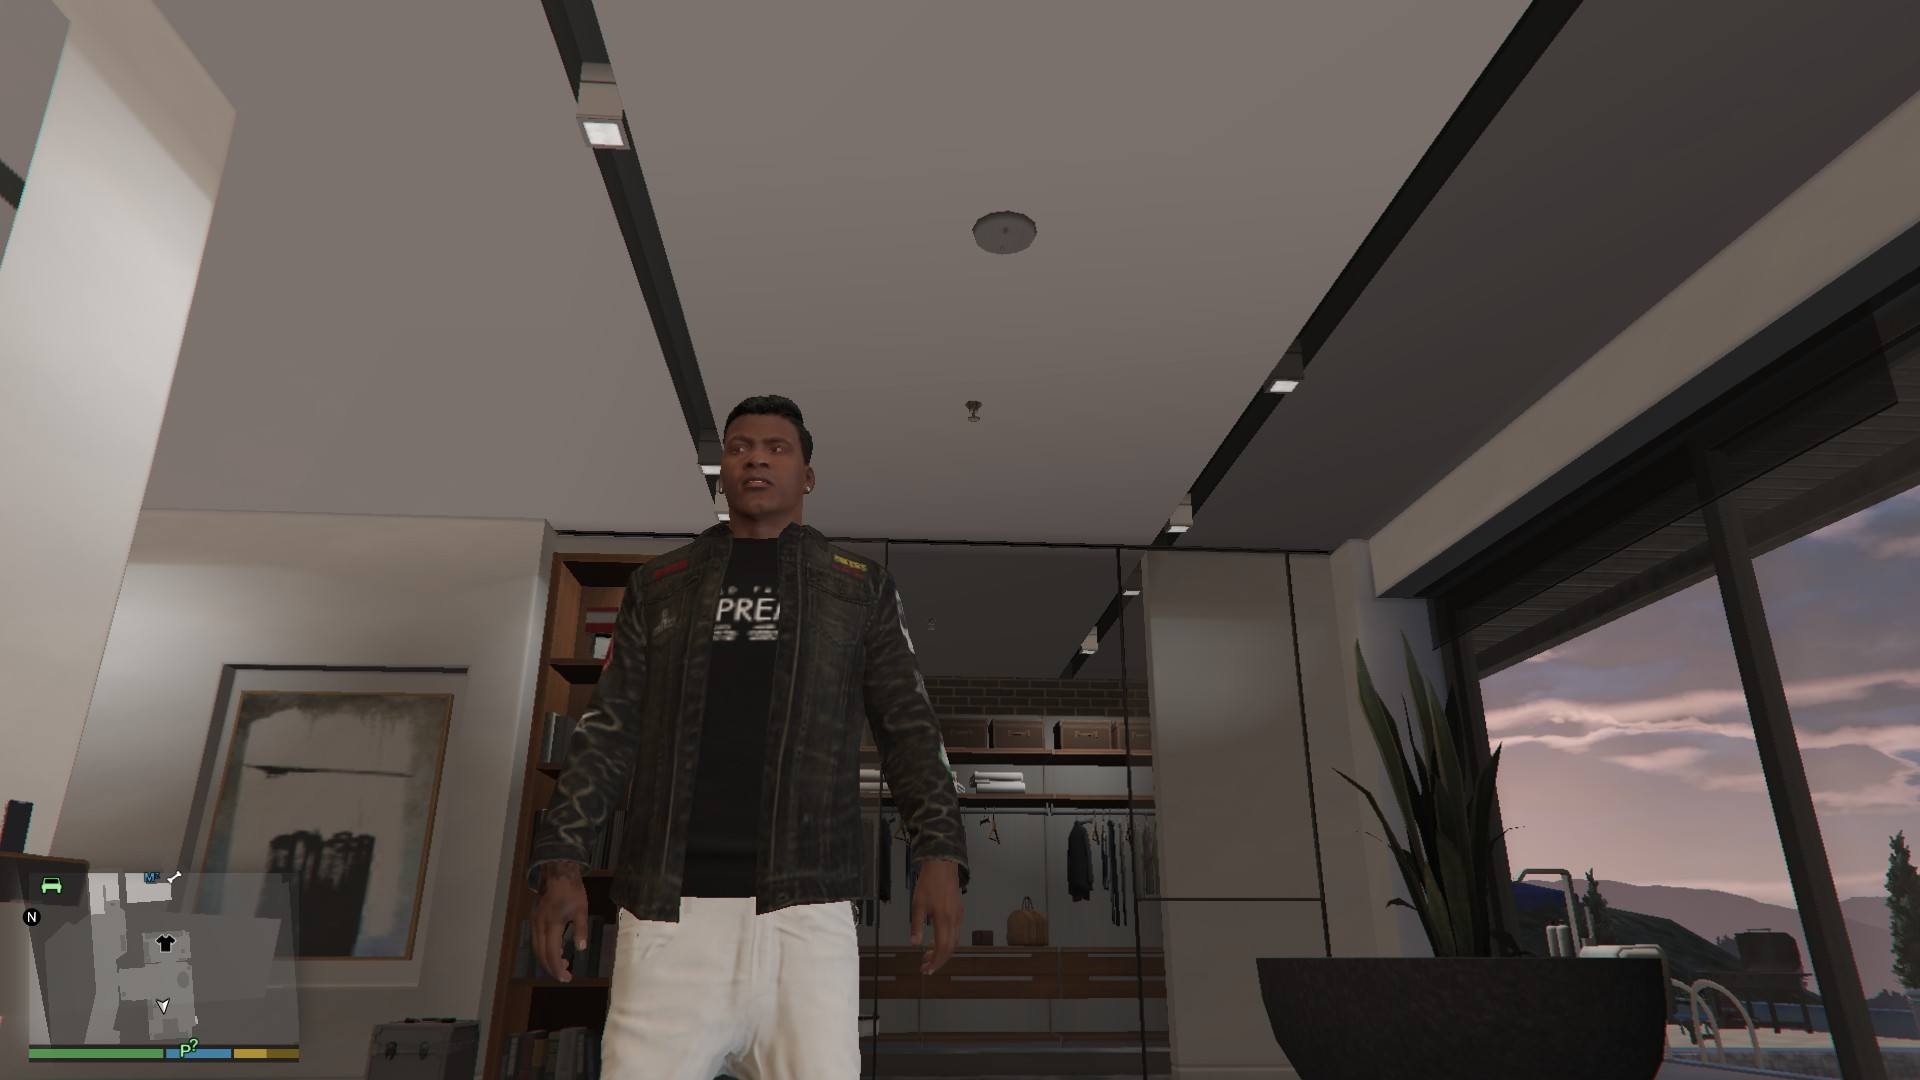 Denim and Sweater for Franklin GTA5 Mods (11)